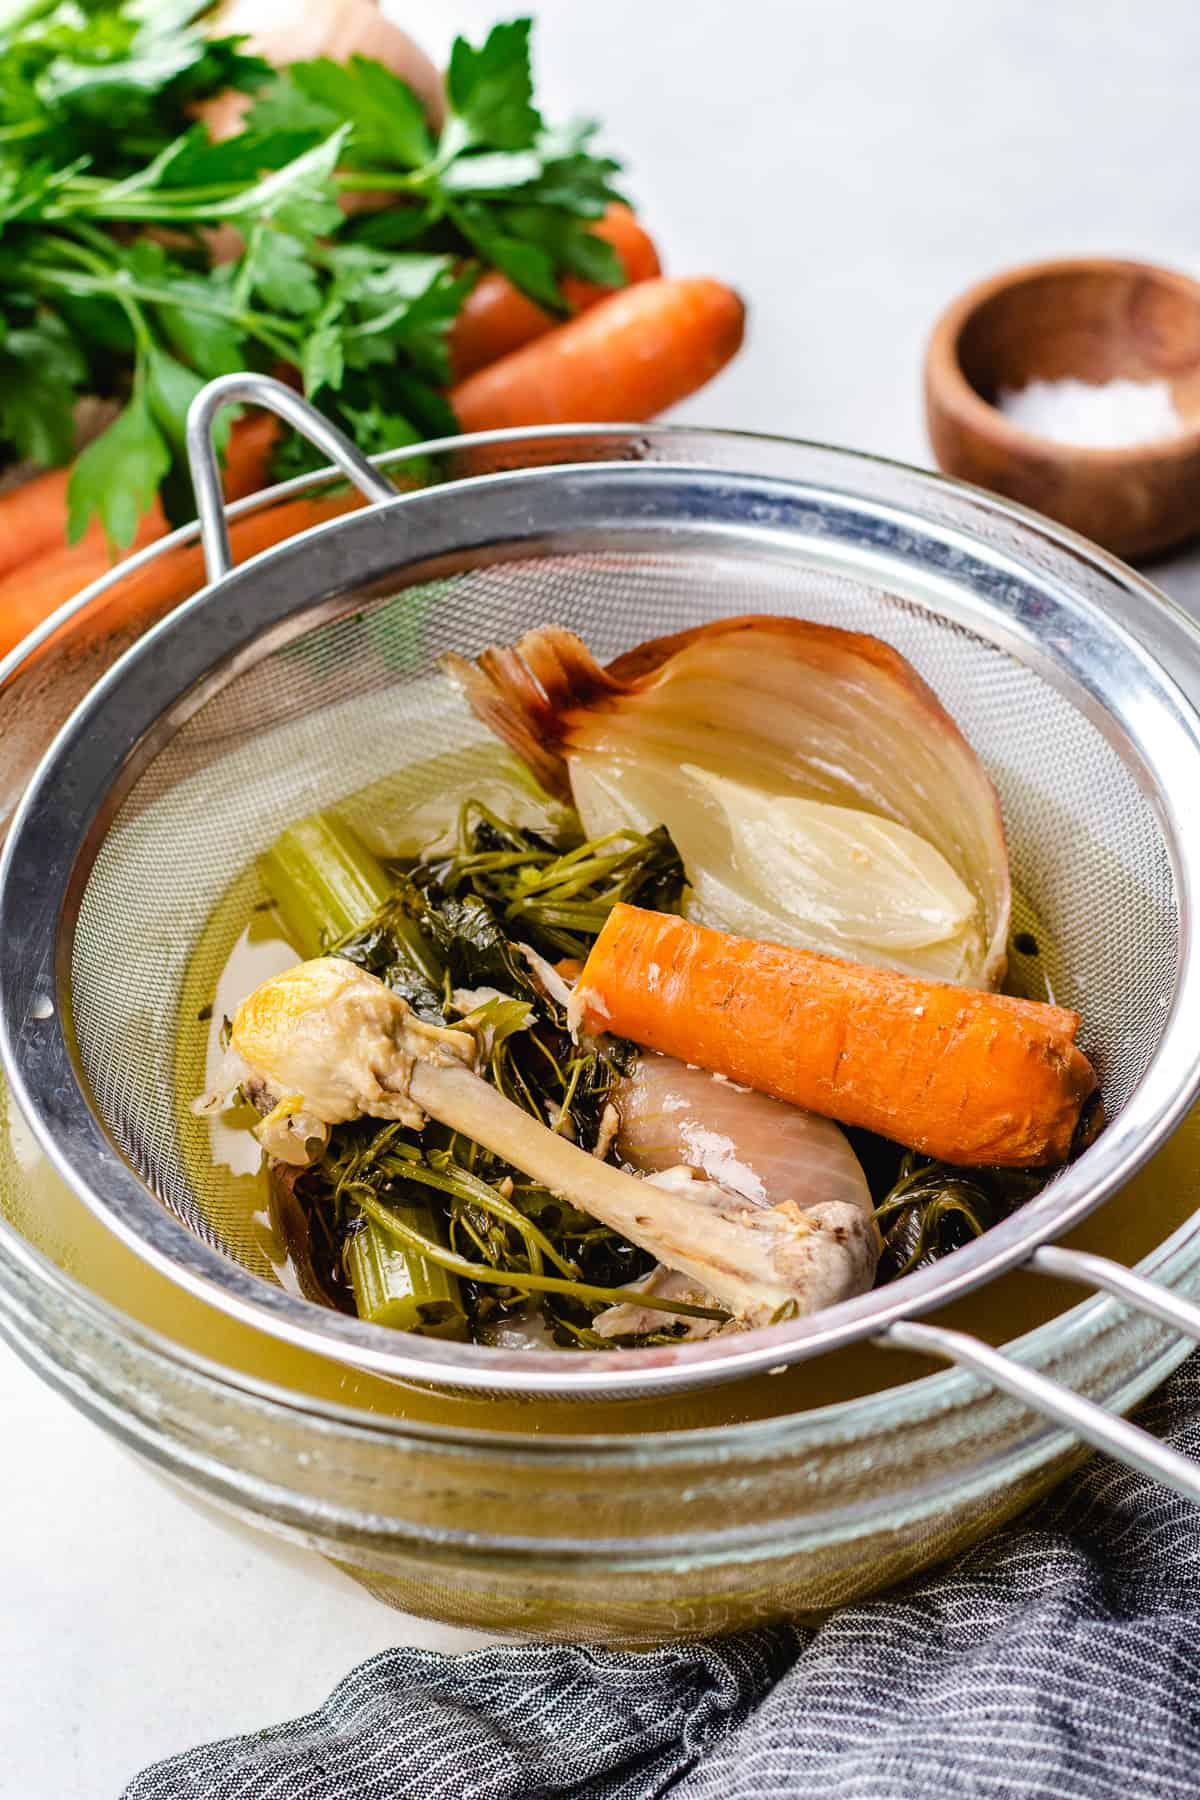 Cooked chicken bones with vegetables in a mesh to strain chicken stock.